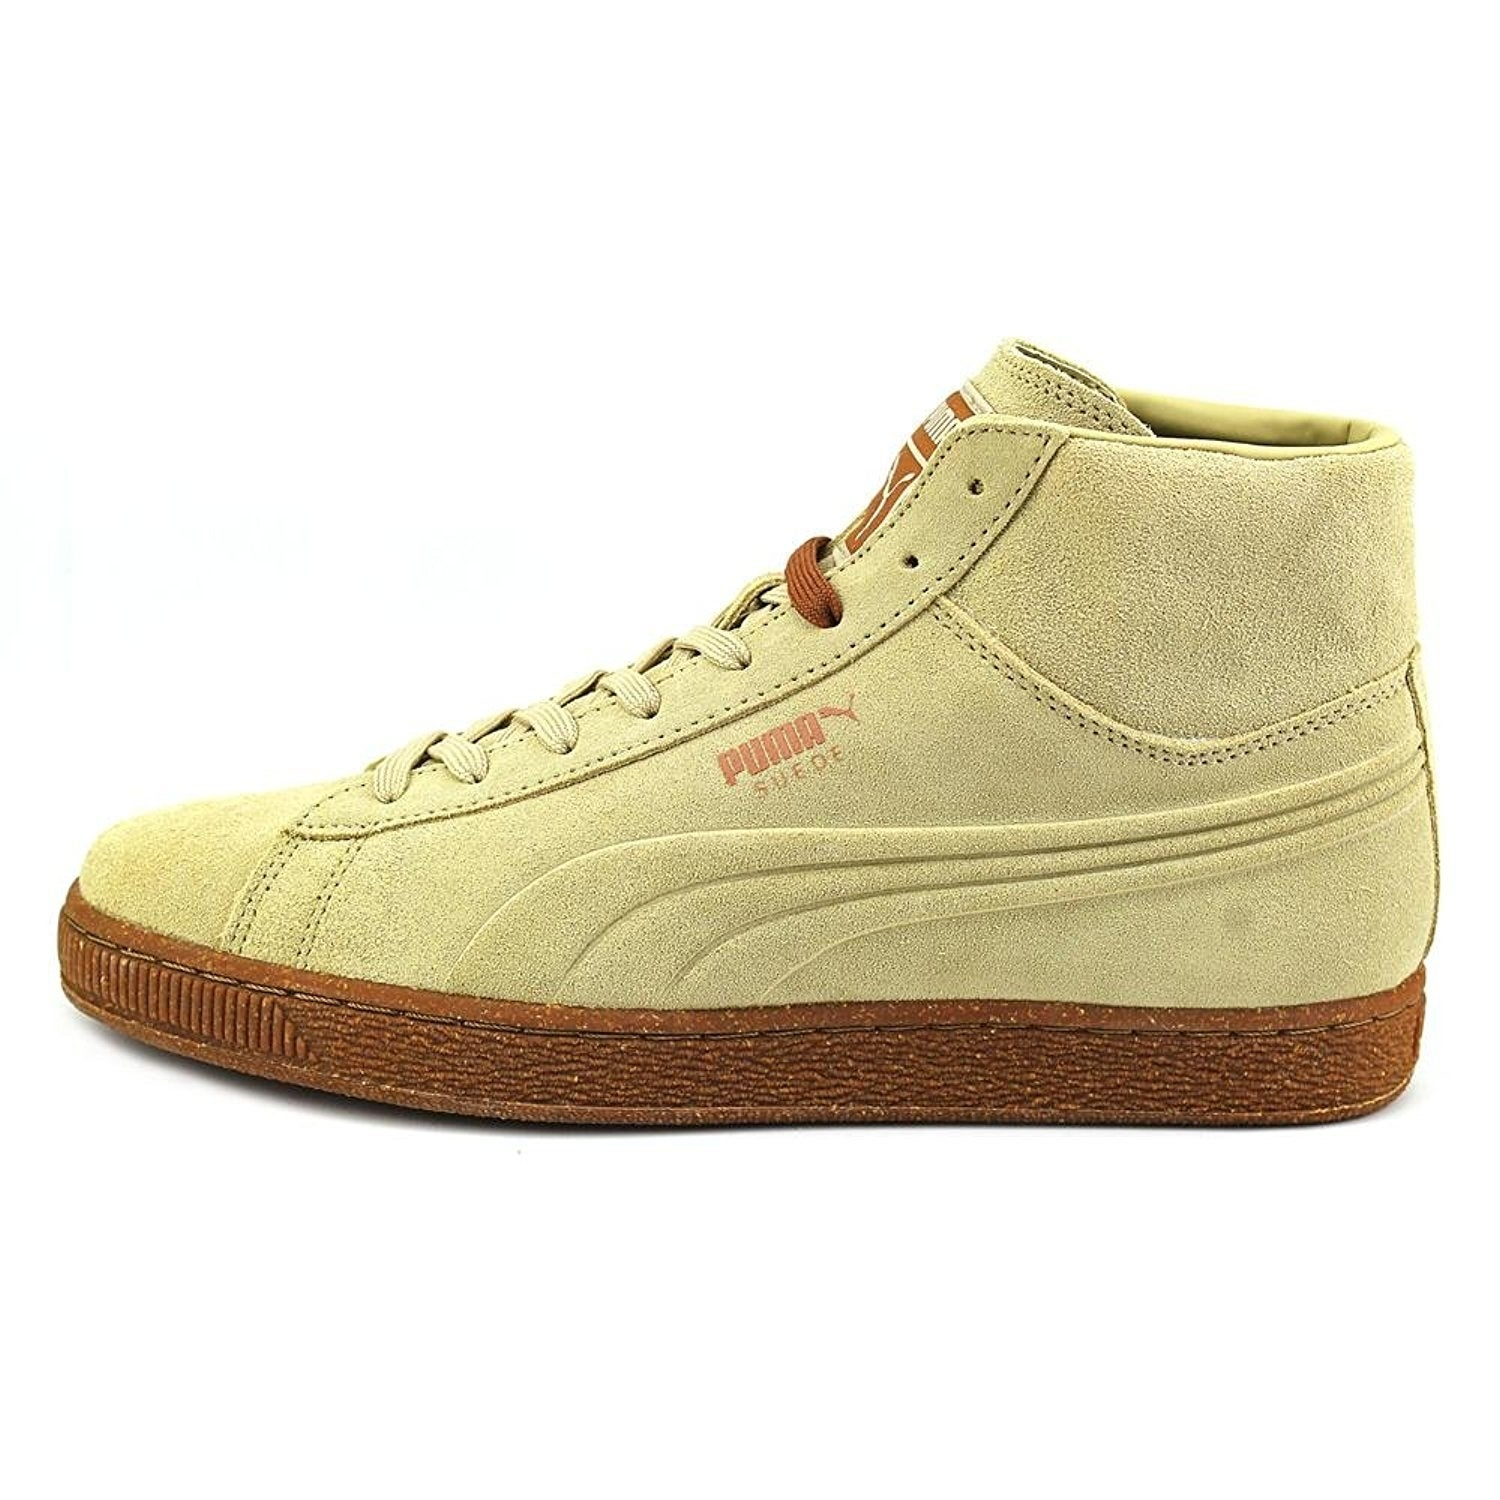 94e707284b1c Shop PUMA Mens Emboss Mixed Suede Hight Top Lace Up Fashion Sneakers - Free  Shipping On Orders Over  45 - Overstock.com - 19834935